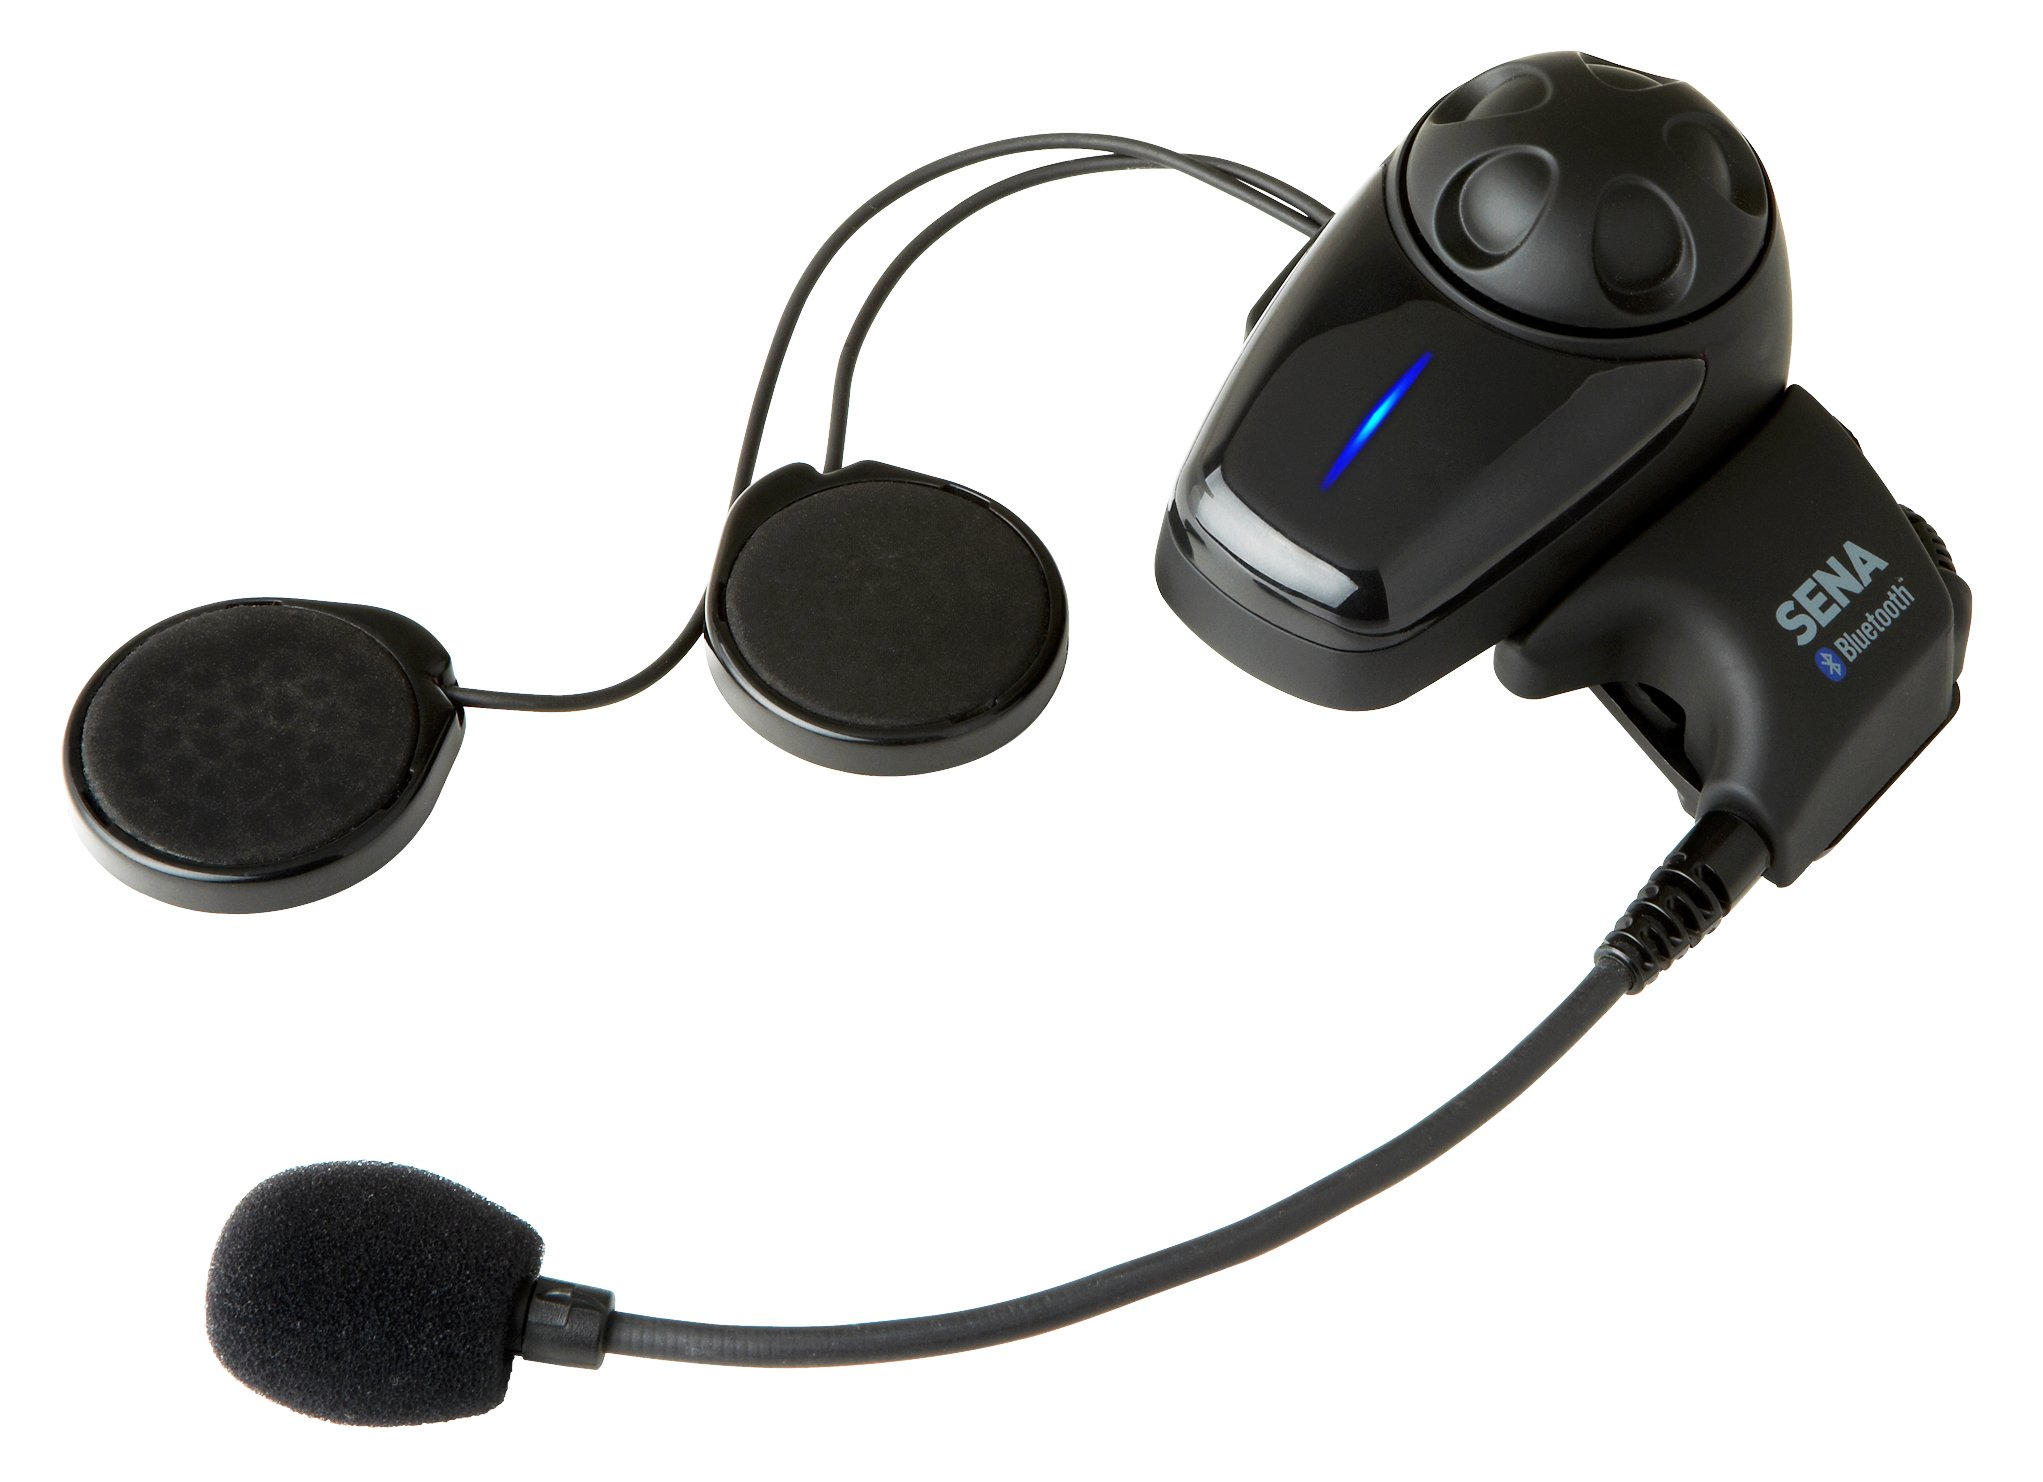 Sena SMH10-10 Motorcycle Bluetooth Headset / Intercom (Single) by Sena